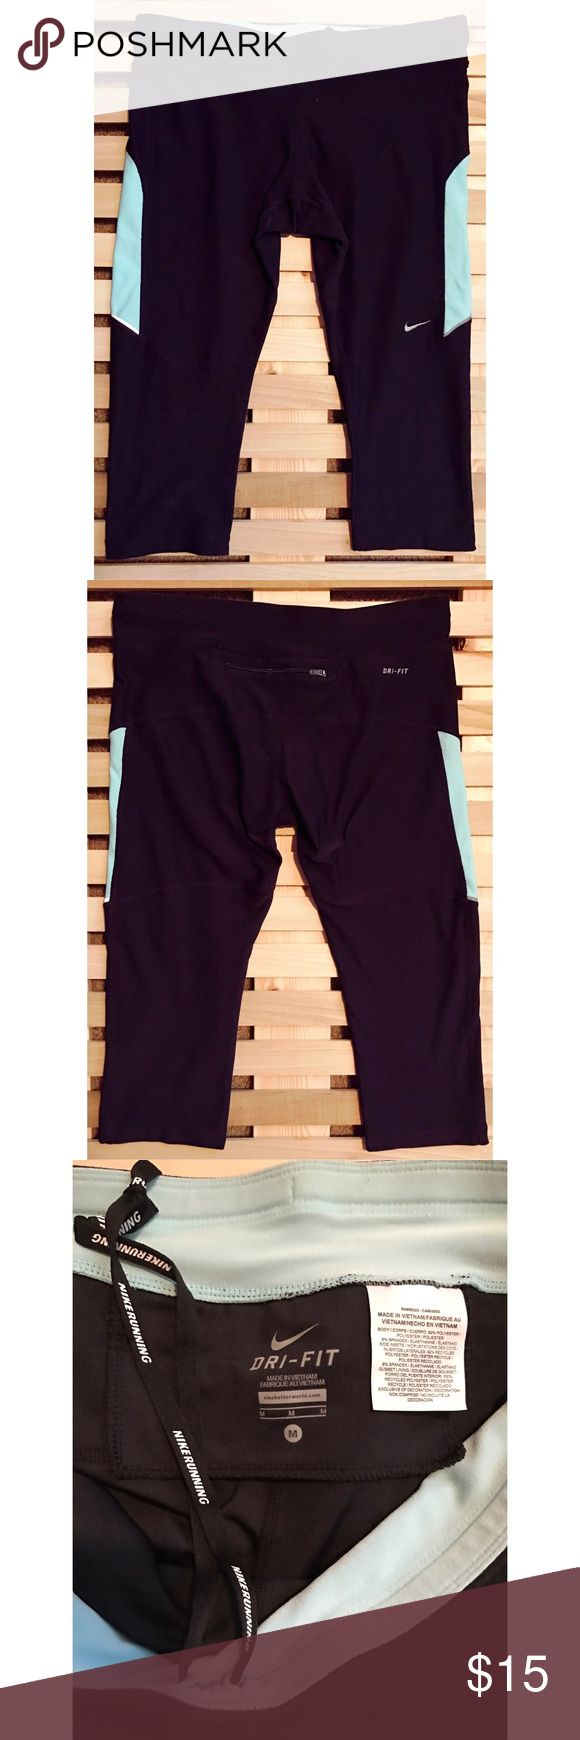 """Nike Capri Pants Awesome pair of black and light blue Nike bike/running capri pants! Have inside tie and zipper pocket on back. Size medium, tight fit. 24.5"""" long, 17.5"""" inseam. In great condition! Nike Pants"""